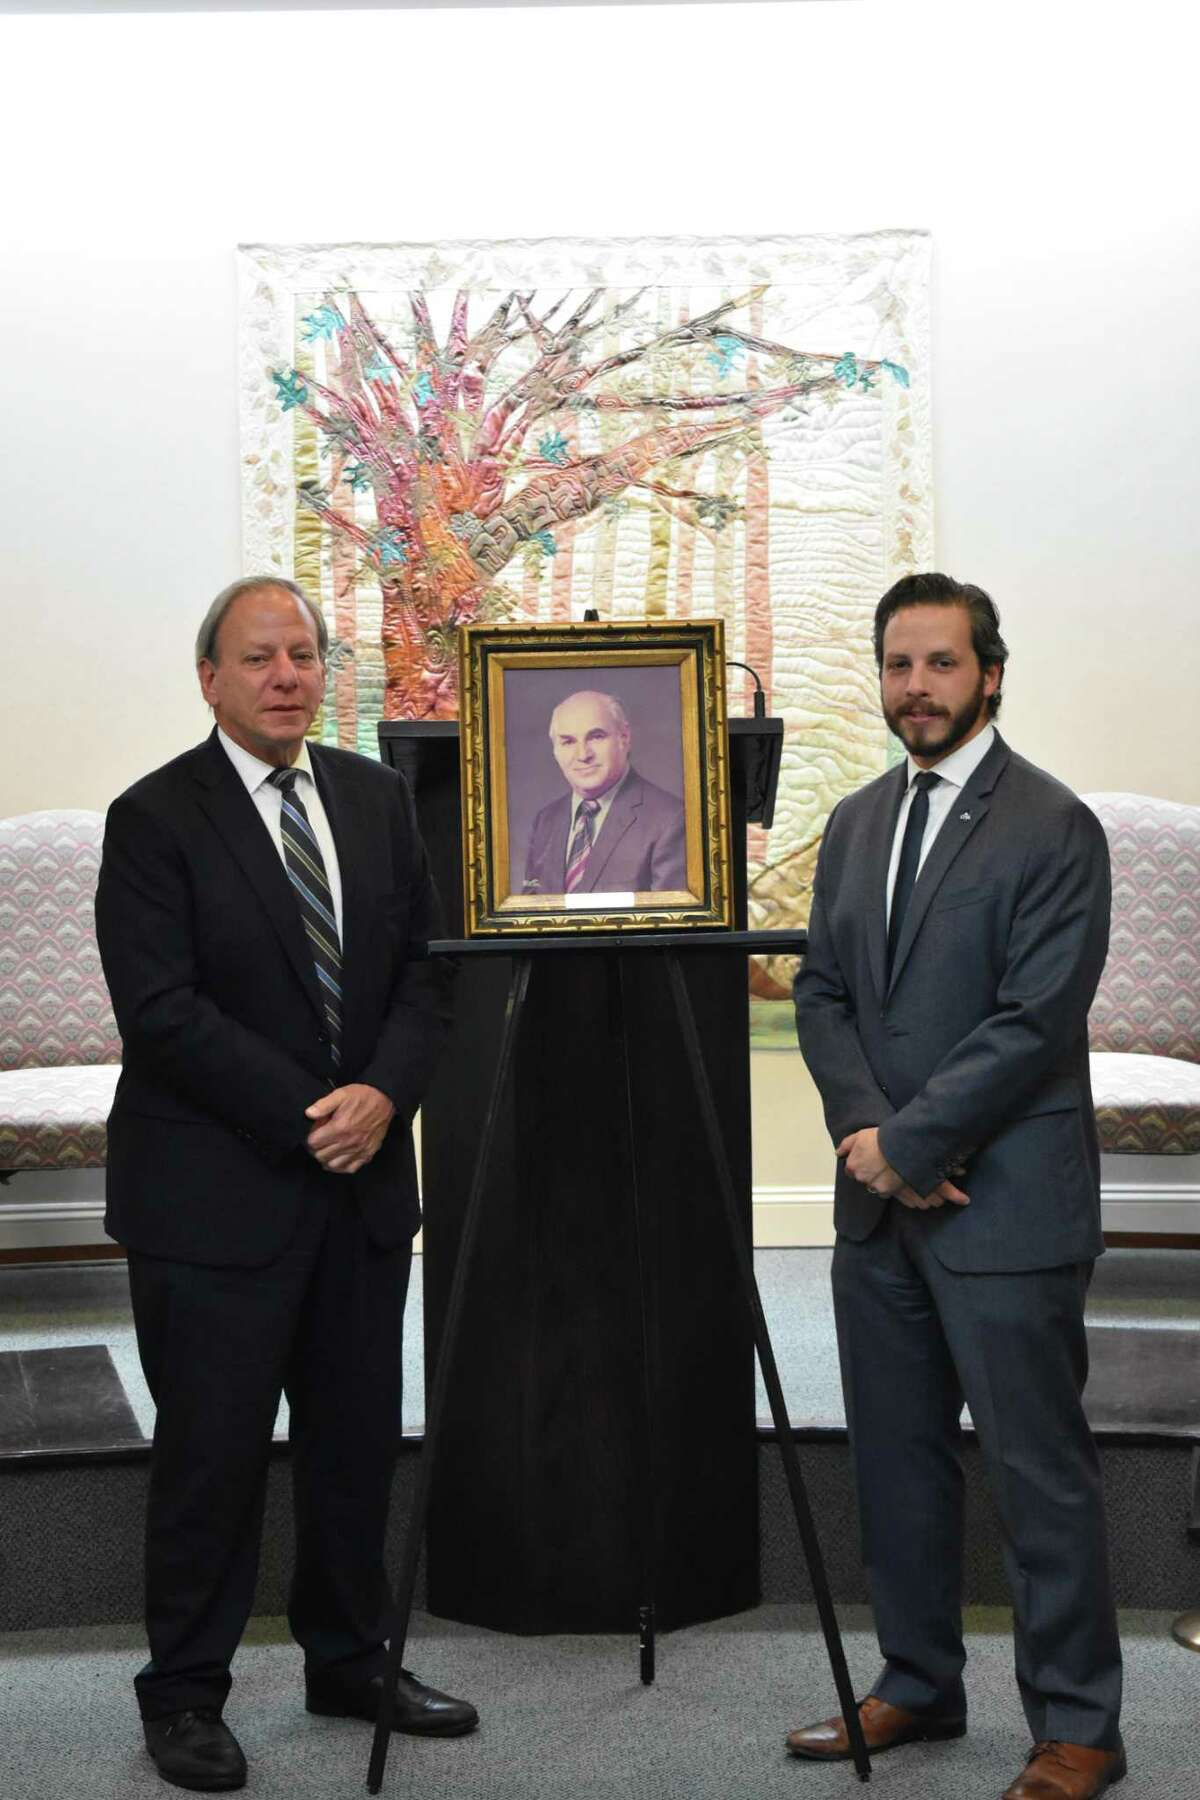 Samuel (son of the founder) and Jonathan (grandson of the founder). The portrait is of founder Abraham L. Green.